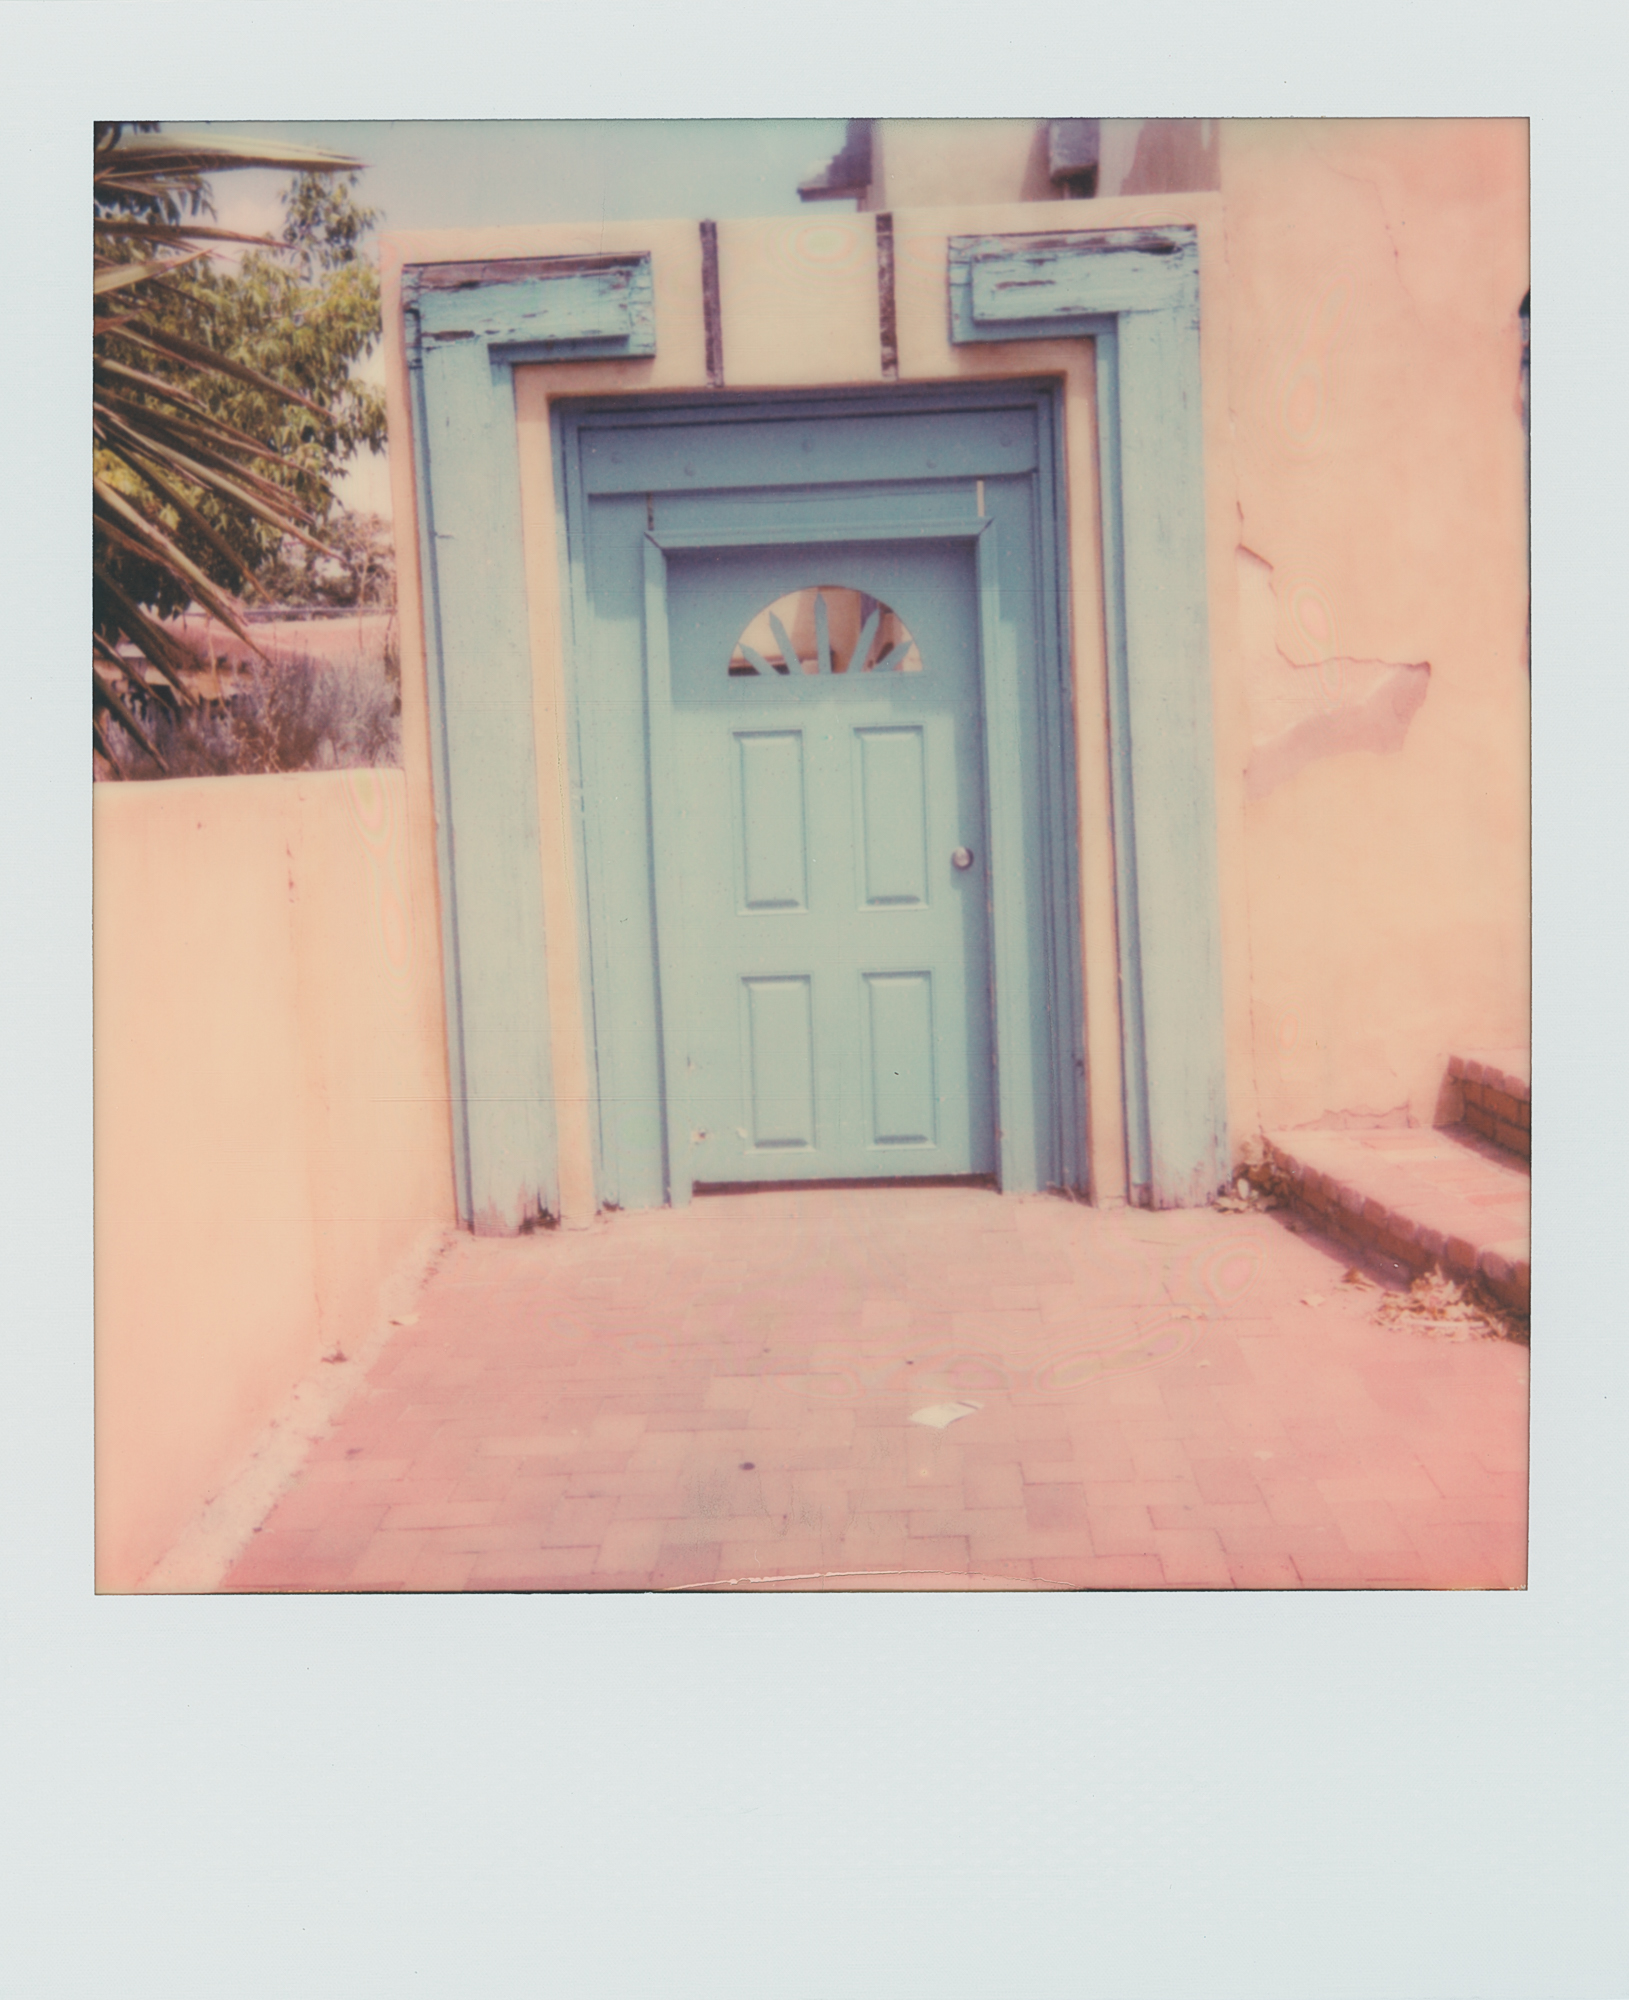 into the west Old Town Albuquerque 2019 Polaroid color (1 of 1).jpg